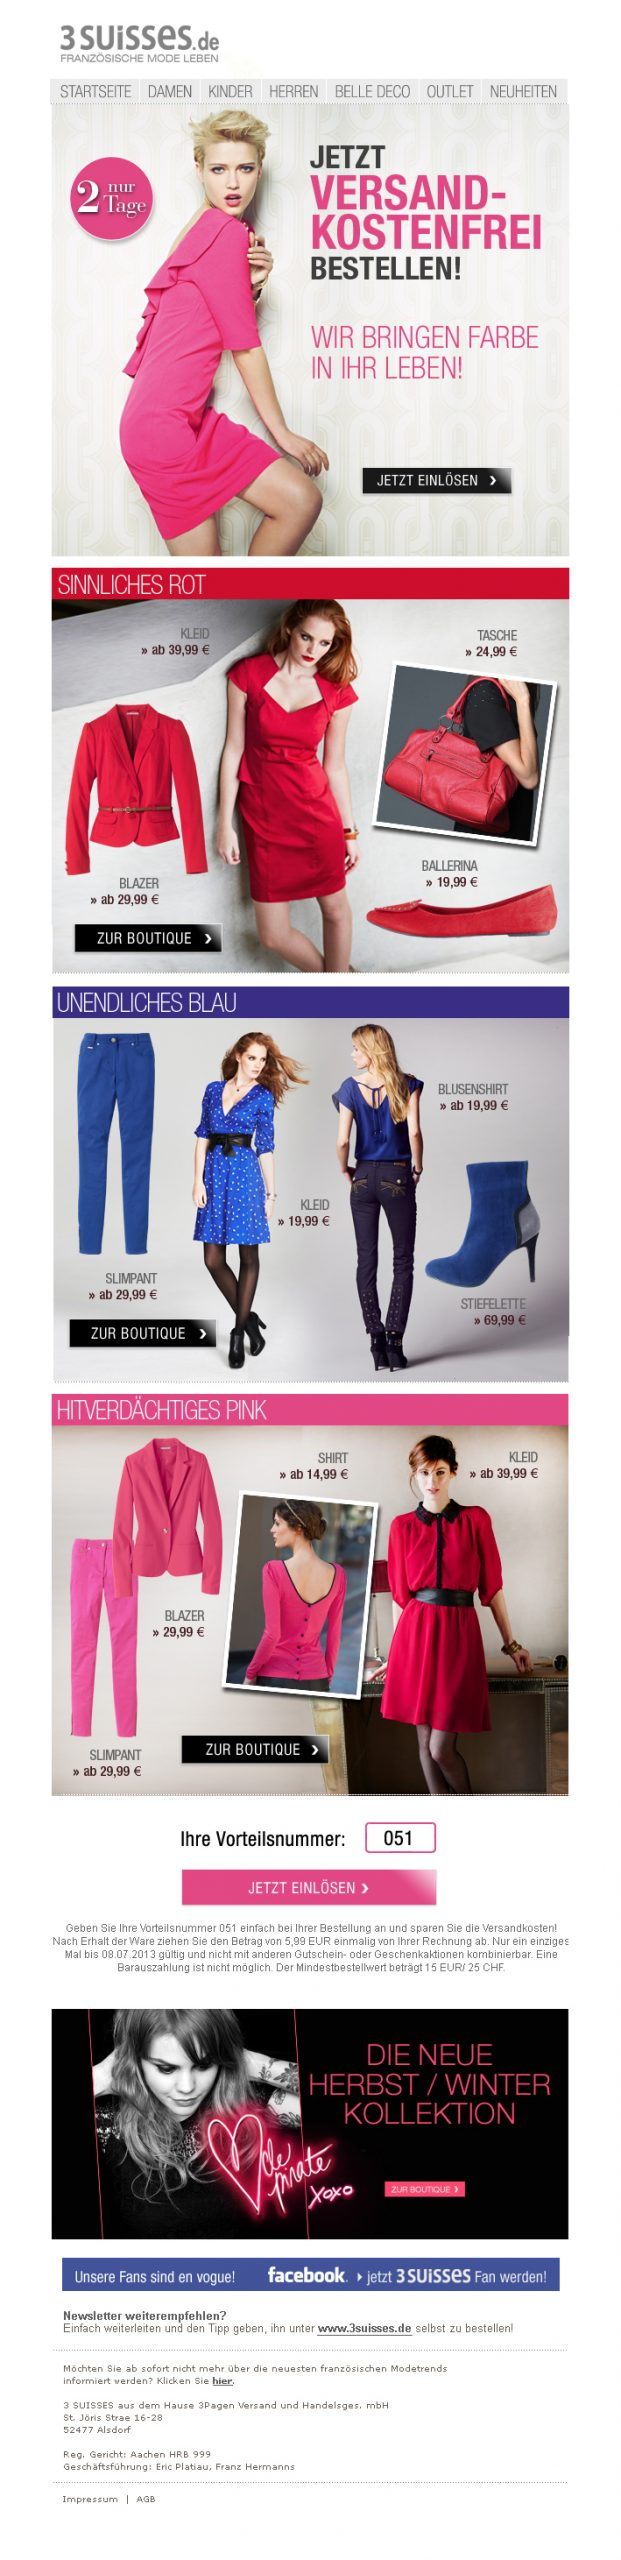 newsletter_3S_kw27_Colormania